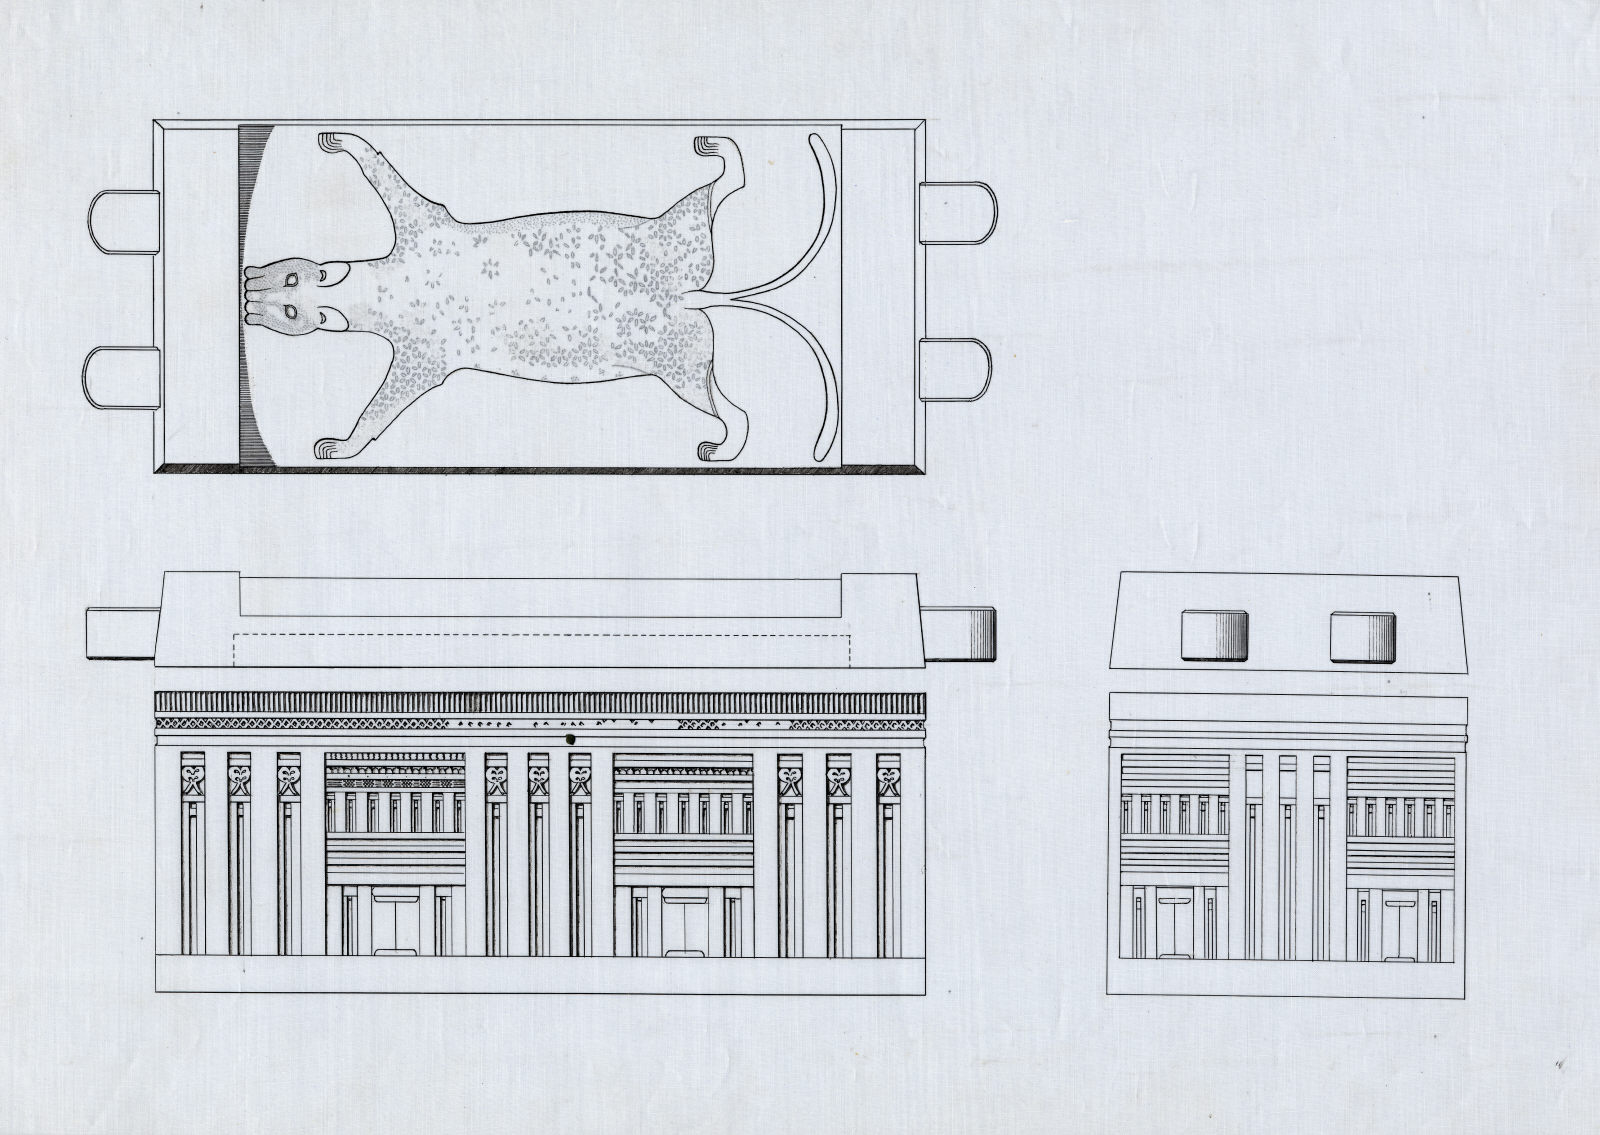 Drawings: G 7340, Shaft X: sarcophagus